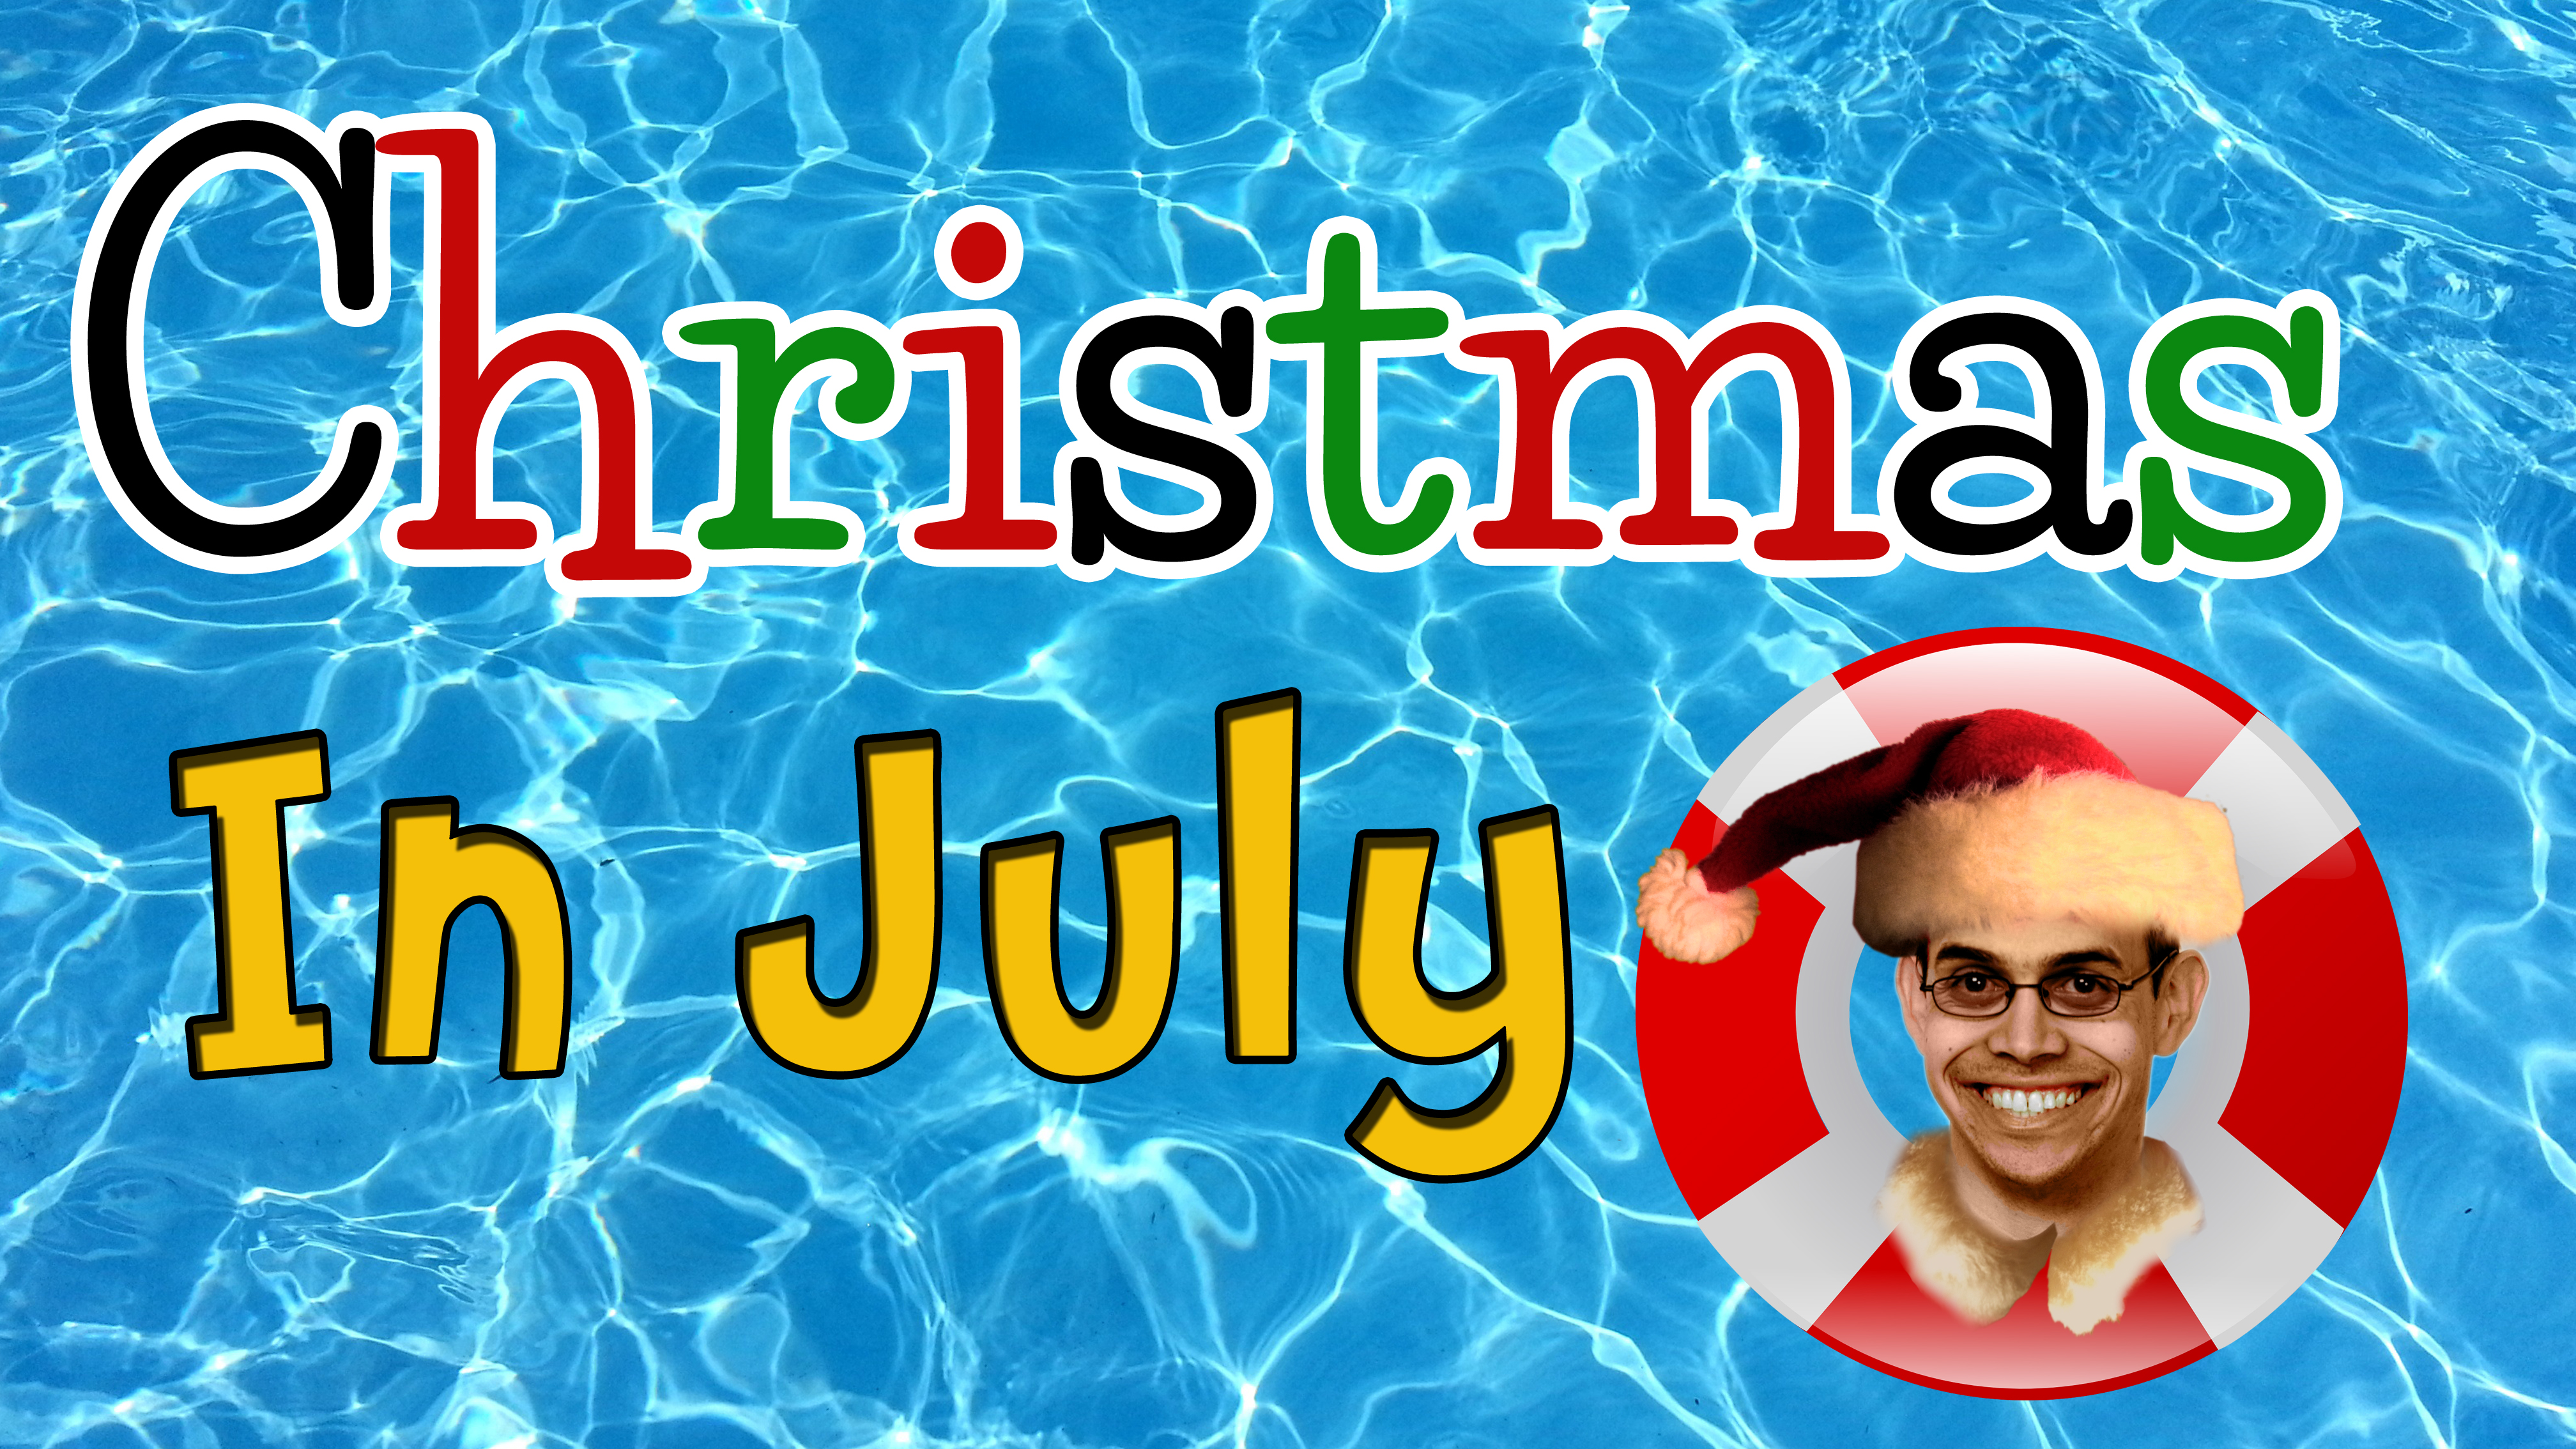 Hallmark Christmas In July Meme.Going To Talk To Christina